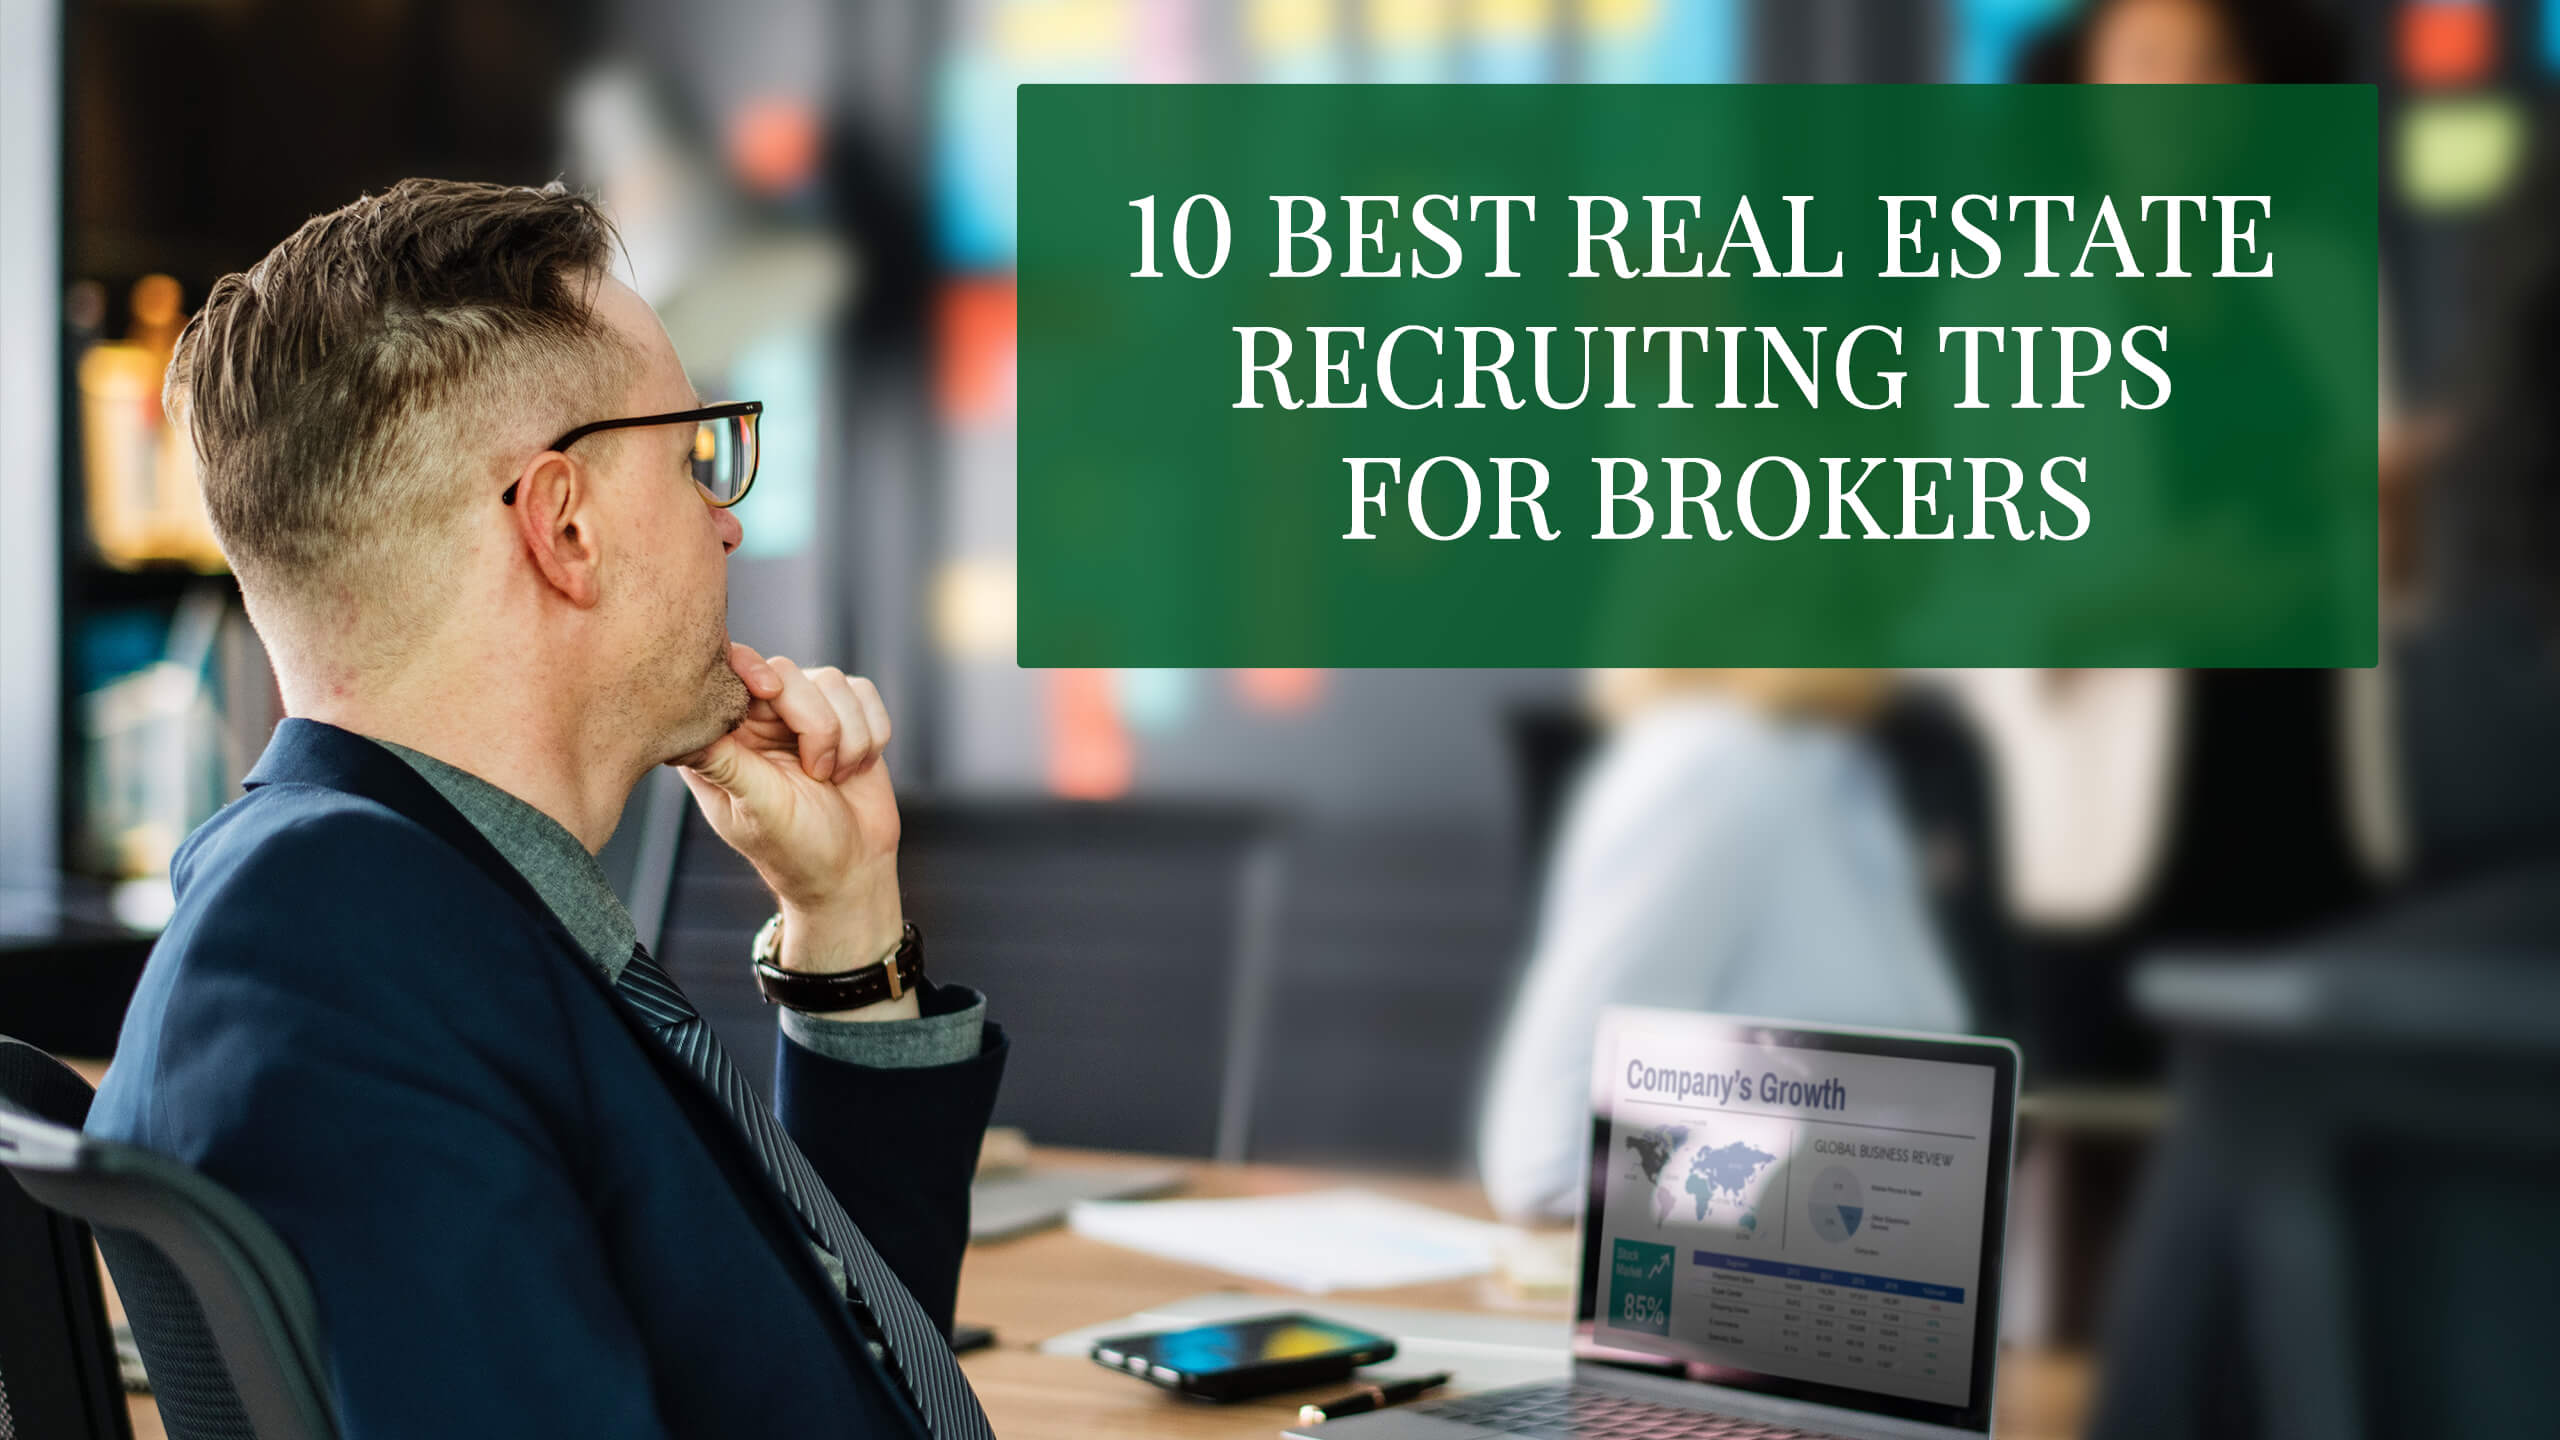 6 things to look for in a real estate   recruiter